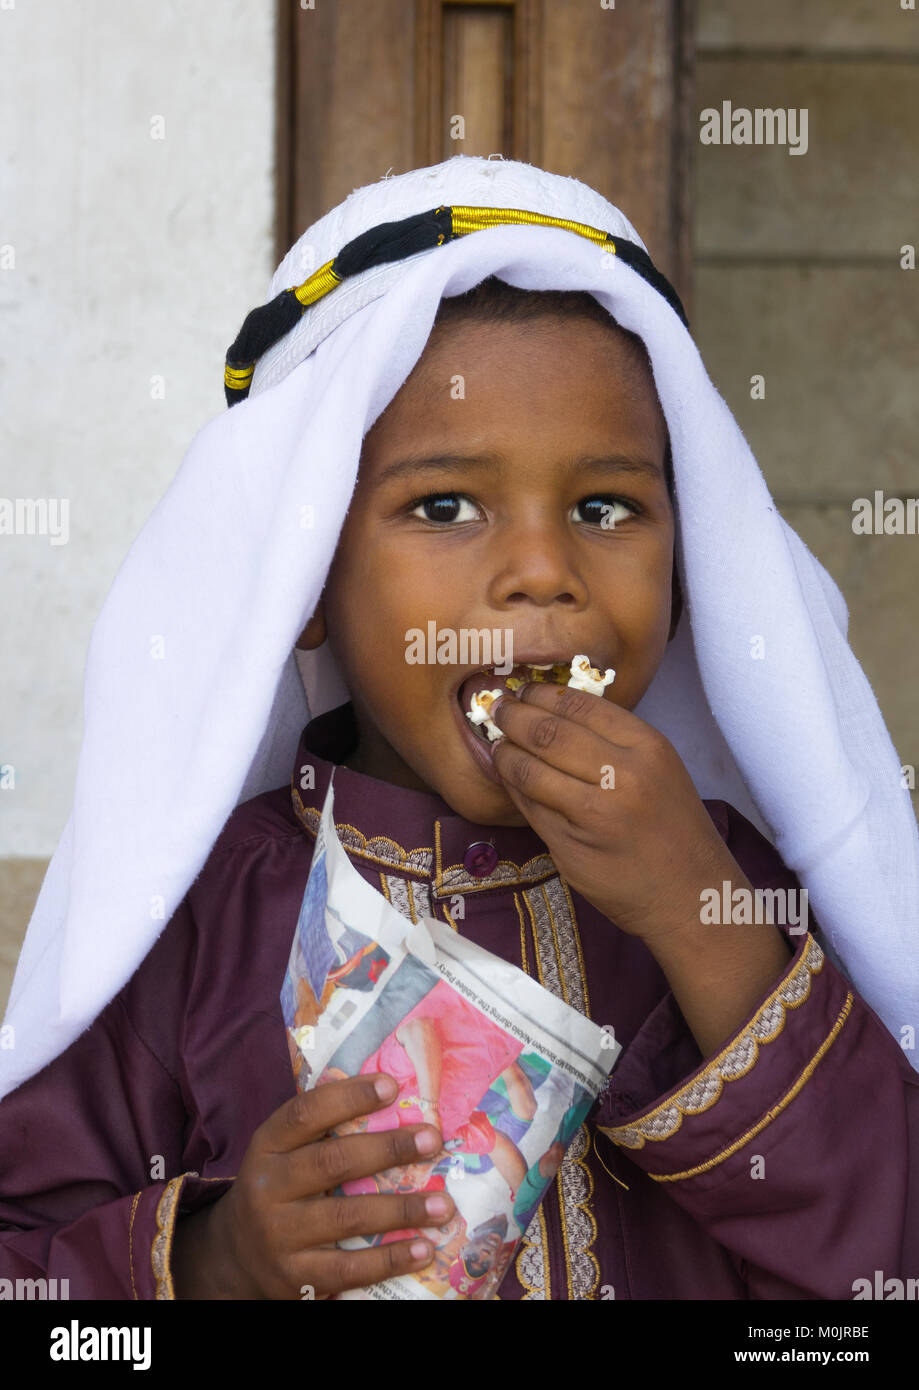 Young boy in traditional suit dressed for the Mawlid festival, eating popcorn, Lamu Island, Kenya - Stock Image